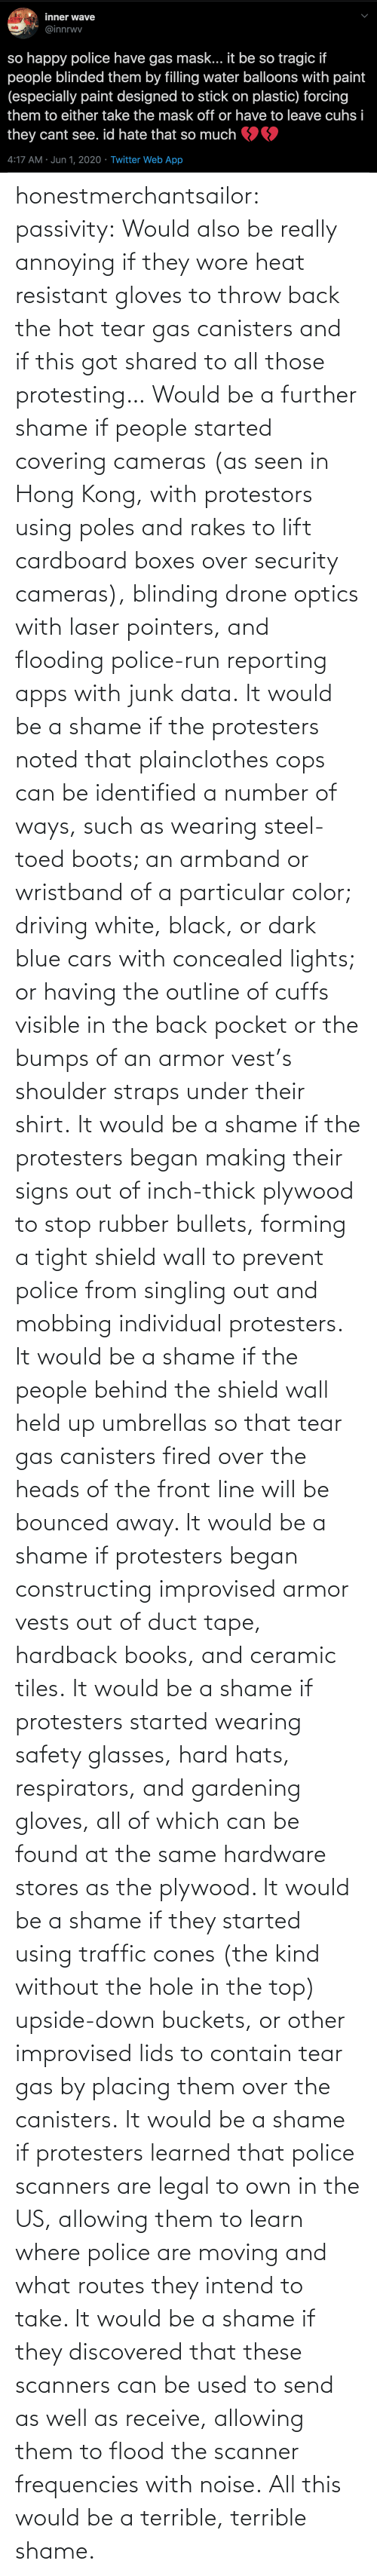 Ways: honestmerchantsailor: passivity: Would also be really annoying if they wore heat resistant gloves to throw back the hot tear gas canisters and if this got shared to all those protesting… Would be a further shame if people started covering cameras (as seen in Hong Kong, with protestors using poles and rakes to lift cardboard boxes over security cameras), blinding drone optics with laser pointers, and flooding police-run reporting apps with junk data. It would be a shame if the protesters noted that plainclothes cops can be identified a number of ways, such as wearing steel-toed boots; an armband or wristband of a particular color; driving white, black, or dark blue cars with concealed lights; or having the outline of cuffs visible in the back pocket or the bumps of an armor vest's shoulder straps under their shirt. It would be a shame if the protesters began making their signs out of inch-thick plywood to stop rubber bullets, forming a tight shield wall to prevent police from singling out and mobbing individual protesters. It would be a shame if the people behind the shield wall held up umbrellas so that tear gas canisters fired over the heads of the front line will be bounced away. It would be a shame if protesters began constructing improvised armor vests out of duct tape, hardback books, and ceramic tiles. It would be a shame if protesters started wearing safety glasses, hard hats, respirators, and gardening gloves, all of which can be found at the same hardware stores as the plywood. It would be a shame if they started using traffic cones (the kind without the hole in the top) upside-down buckets, or other improvised lids to contain tear gas by placing them over the canisters. It would be a shame if protesters learned that police scanners are legal to own in the US, allowing them to learn where police are moving and what routes they intend to take. It would be a shame if they discovered that these scanners can be used to send as well as receive, allowing them to flood the scanner frequencies with noise. All this would be a terrible, terrible shame.